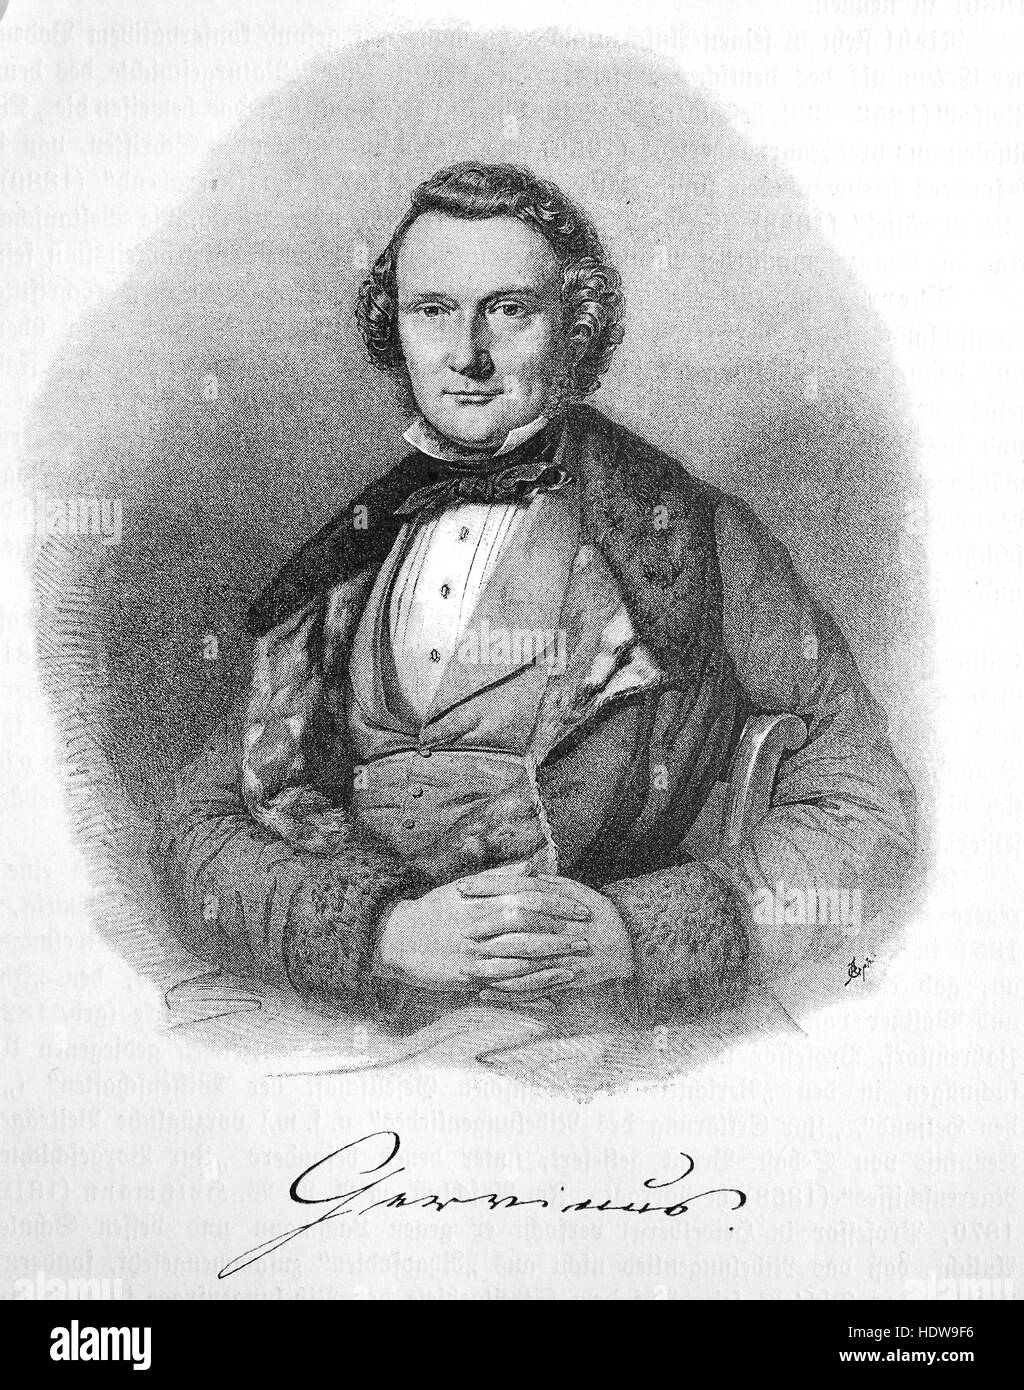 Georg Gottfried Gervinus, 1805-1871, a German literary and political historian, woodcut from the year 1880 - Stock Image